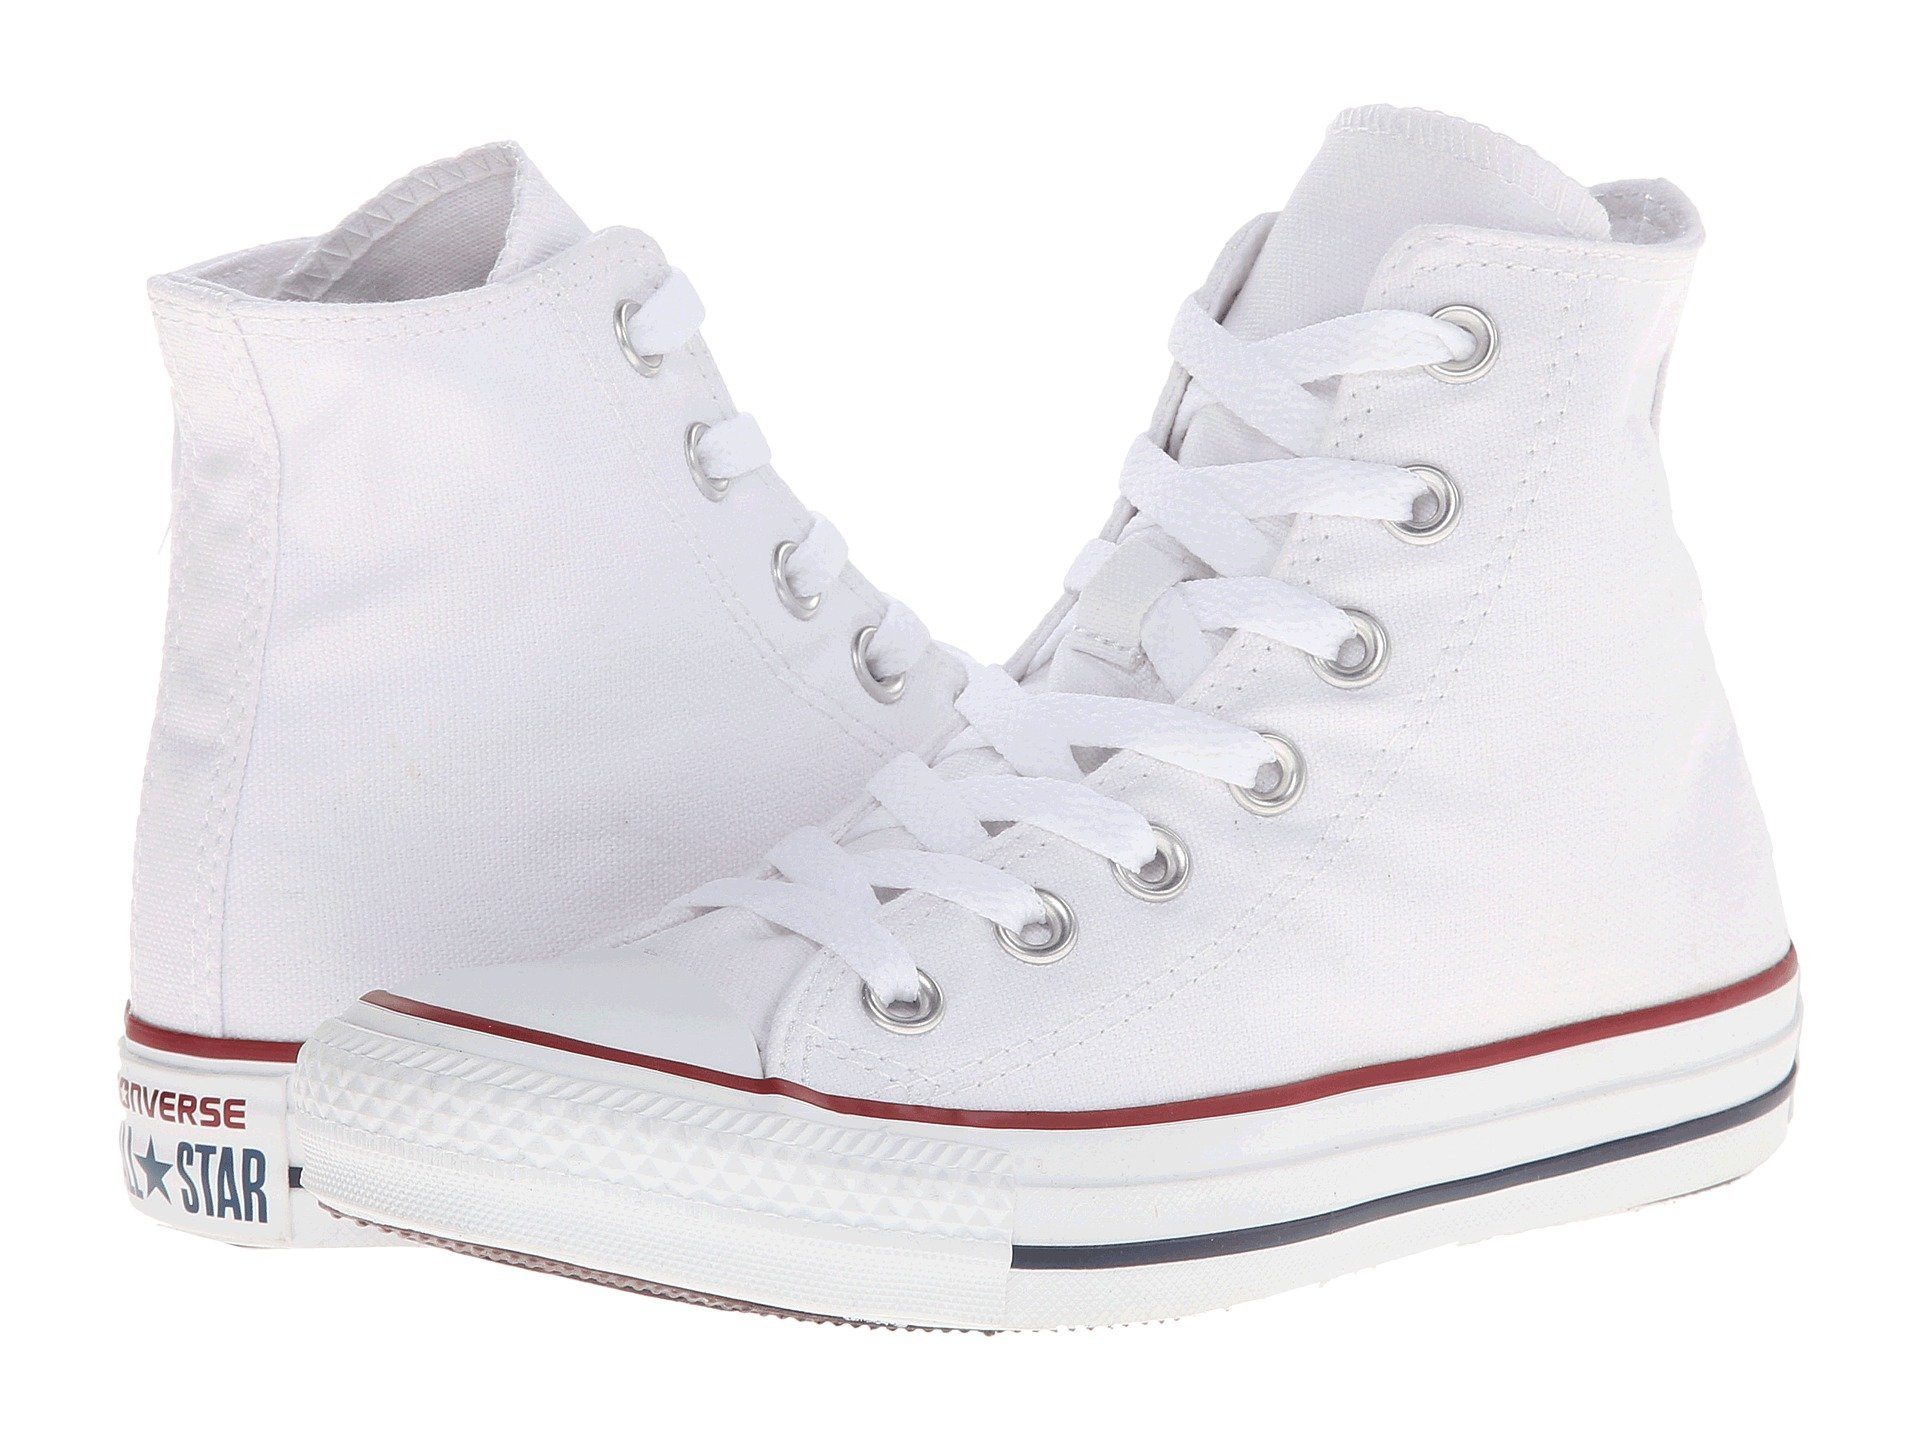 Converse Unisex Chuck Taylor All Star Ox Basketball Shoe (7 B(M) US Women/5 D(M) US Men, Optical/White) by Converse